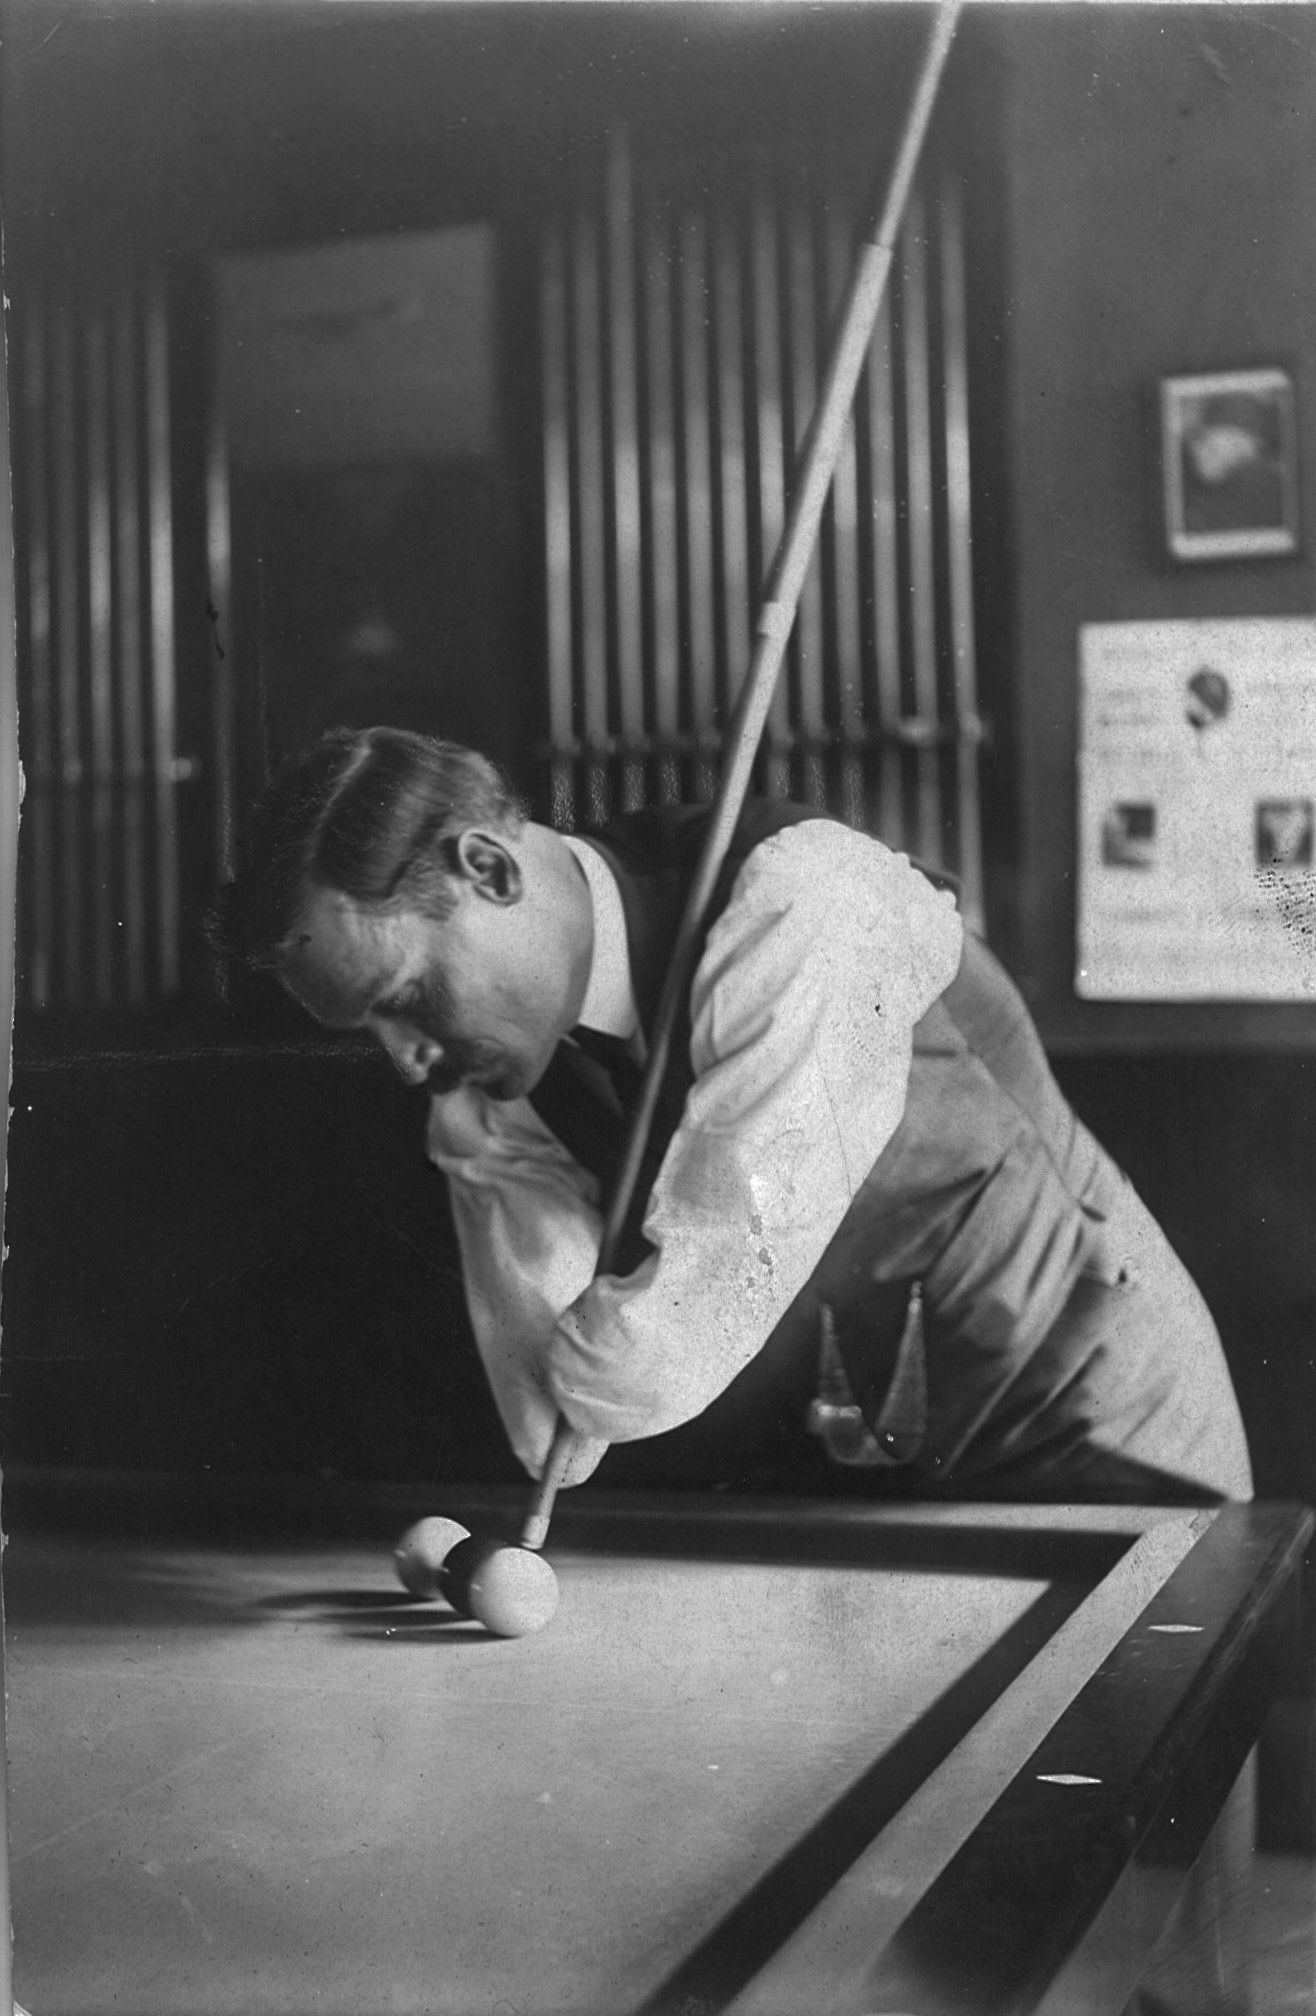 """George H. Sutton (1870 - 1938) was known as the """"handless billiard ..."""